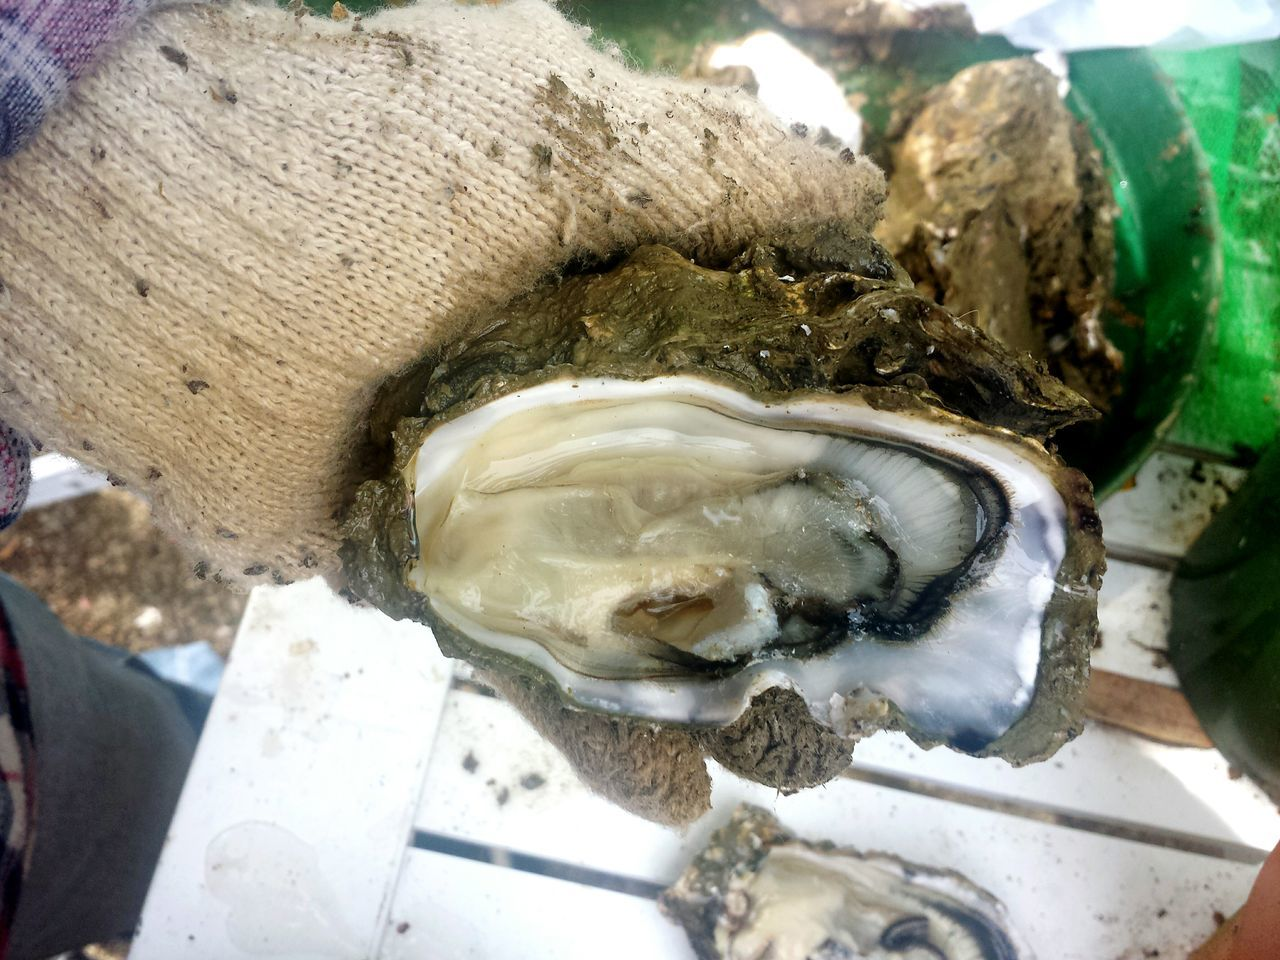 SHELLFISH  Organic Food Bowl Oyster Time Seafood Lovers Seagood Shell Seafood Oyster  Fresh Luxurylifestyle  Luxurious Food And Drink No People